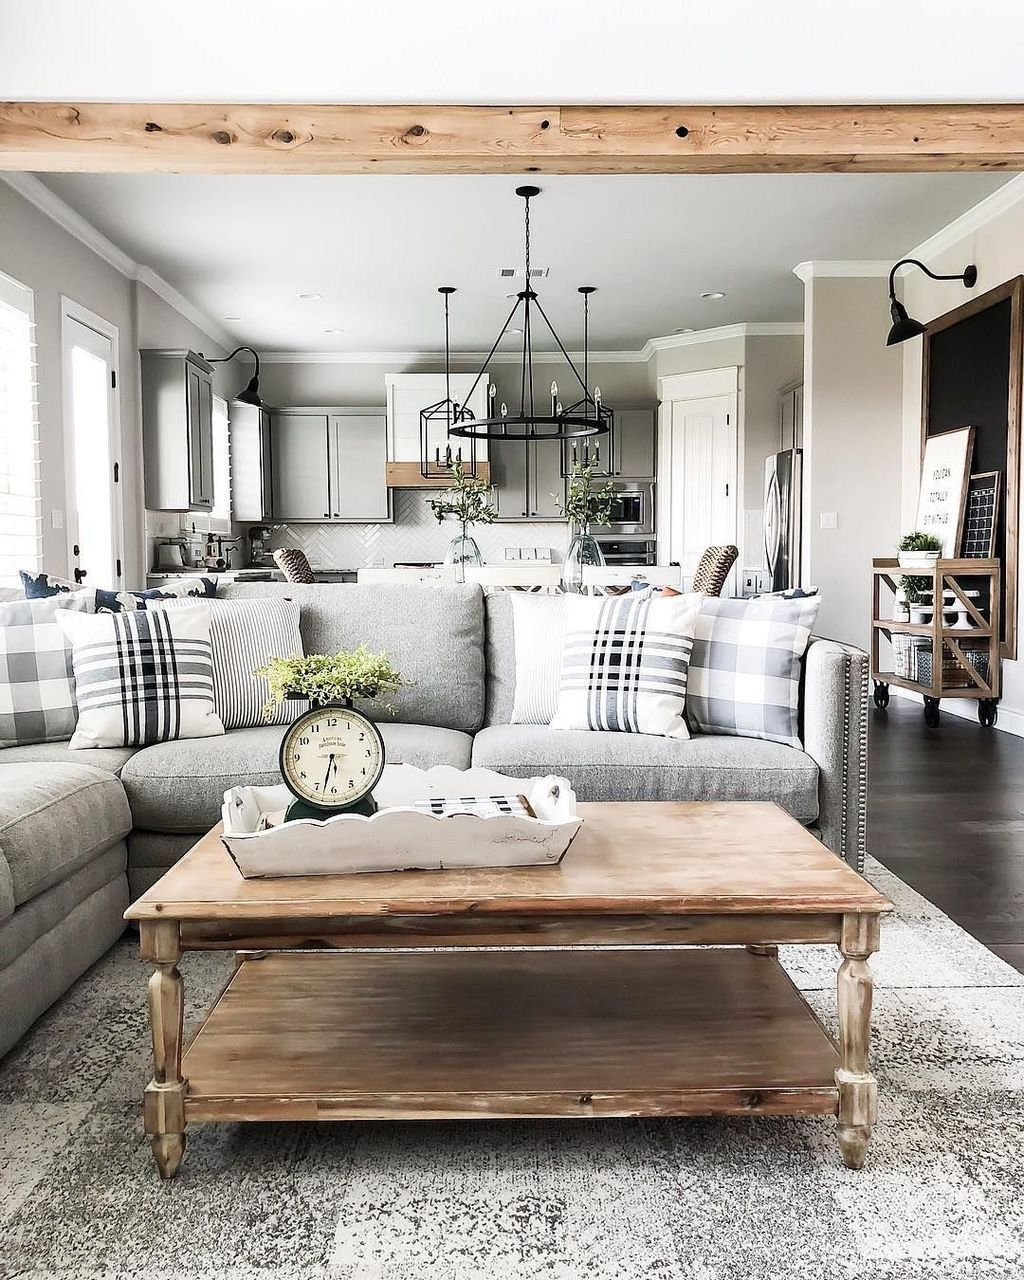 Modern farmhouse interior design ideas huge open idea space with  style day decoration also best diy rustic rh in pinterest